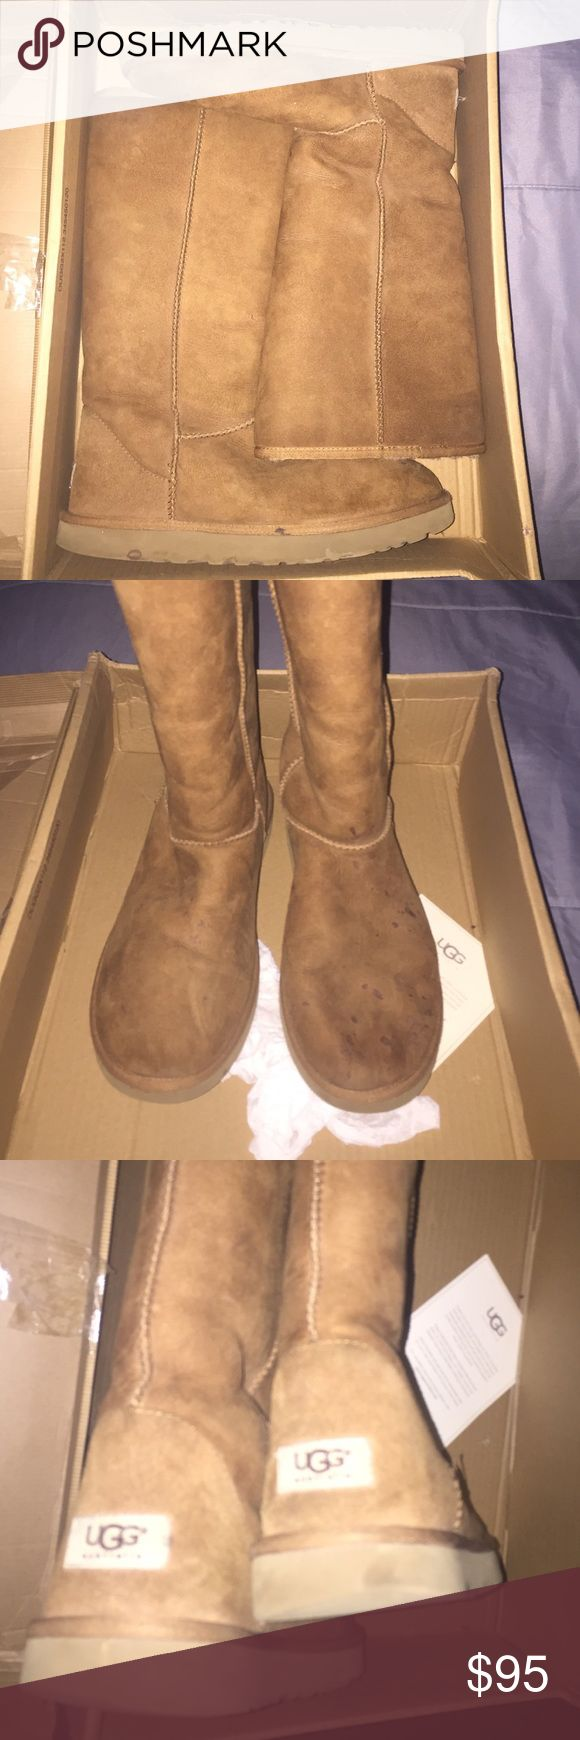 Size 11 Women's Uggs Used for about two winters. Shows some spots. Pics are from all ankles. Has wear obviously. UGG Shoes Winter & Rain Boots